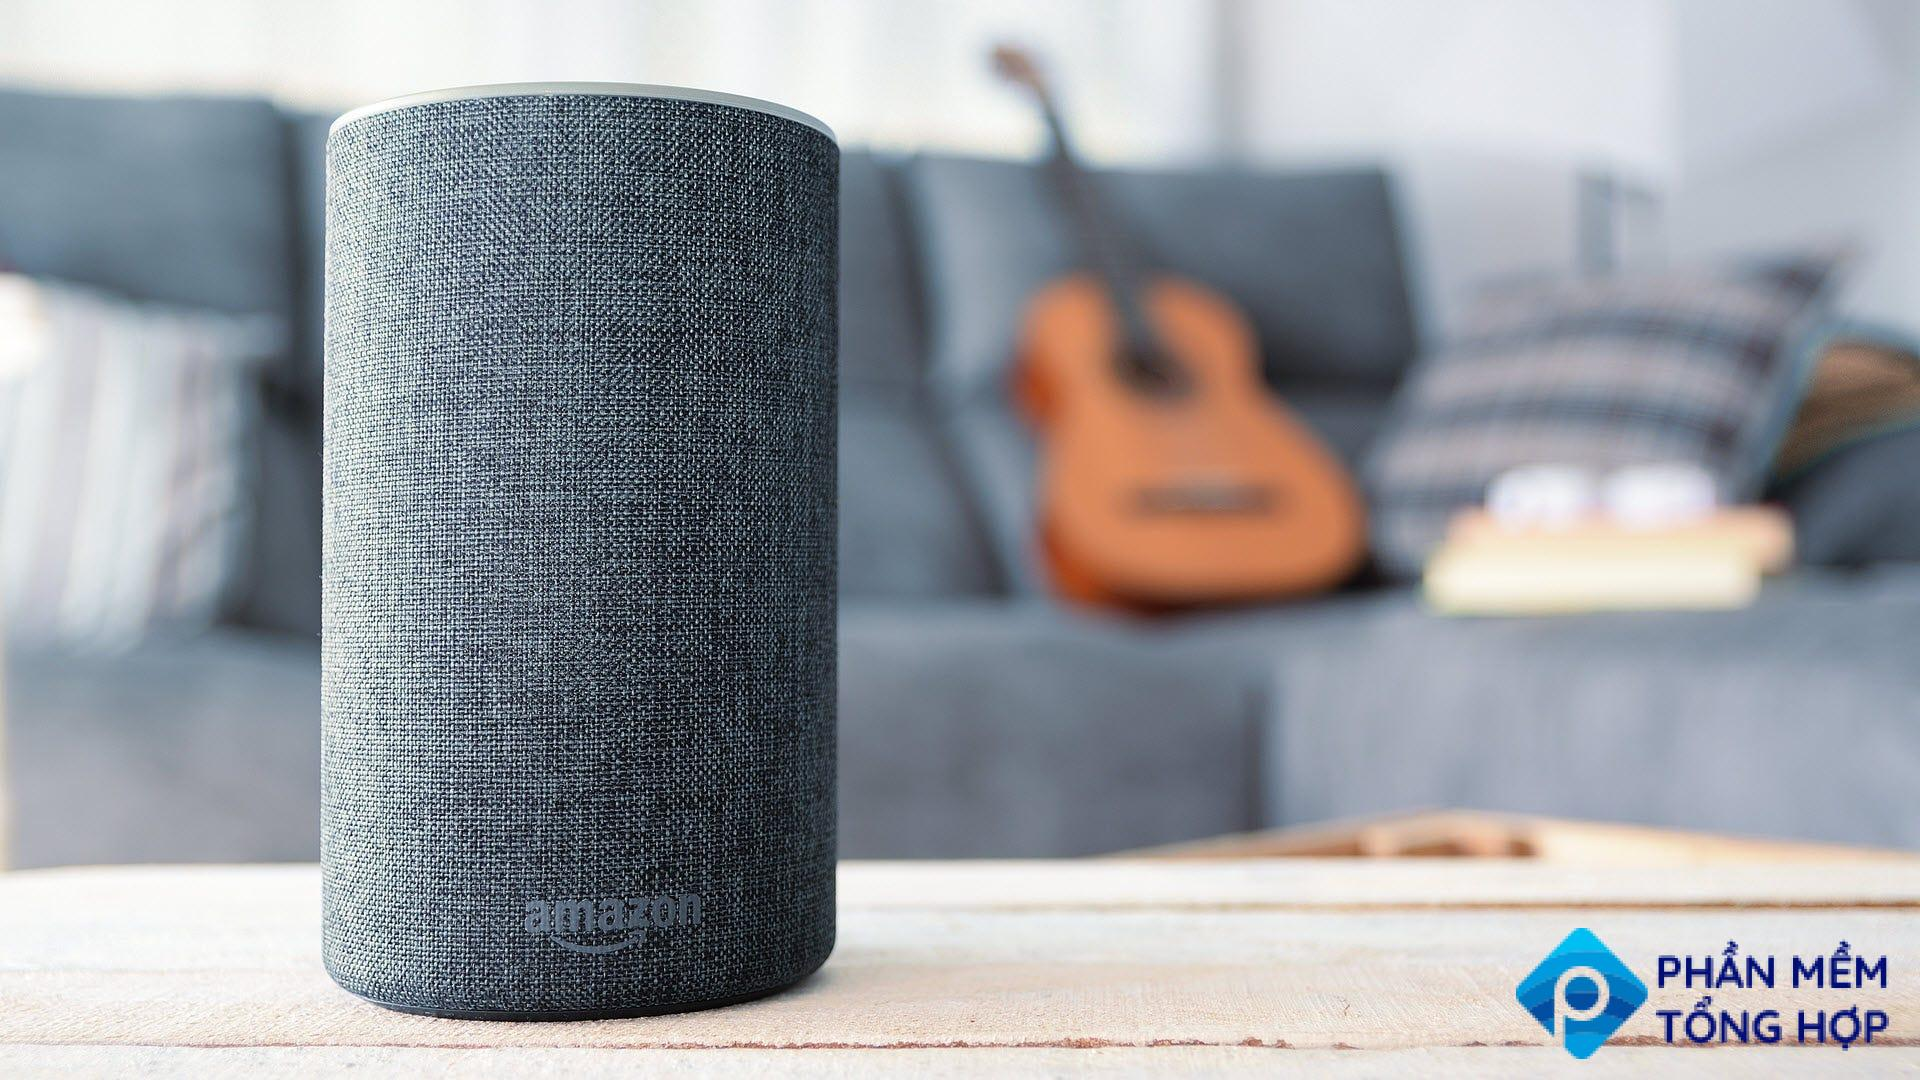 An Amazon Echo on a living room coffee table.